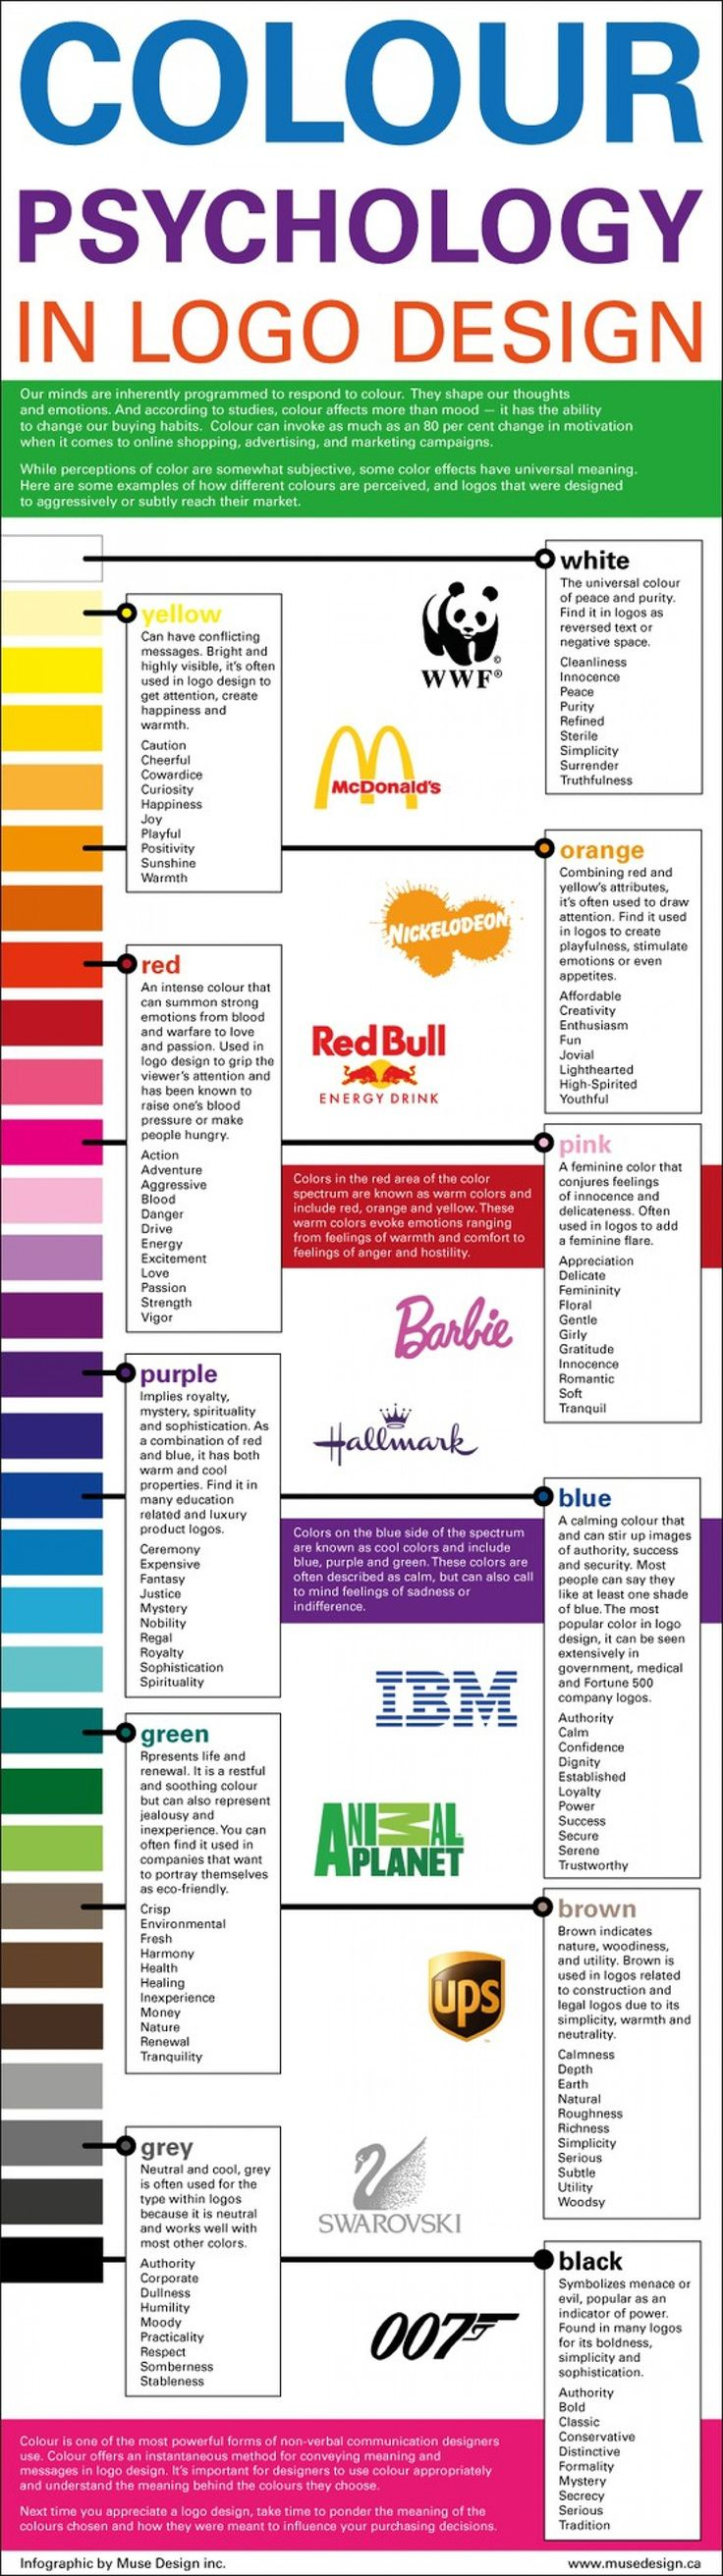 colour-psychology-what-does-your-logo-colour-say-about-you1.jpg (1000×3566)